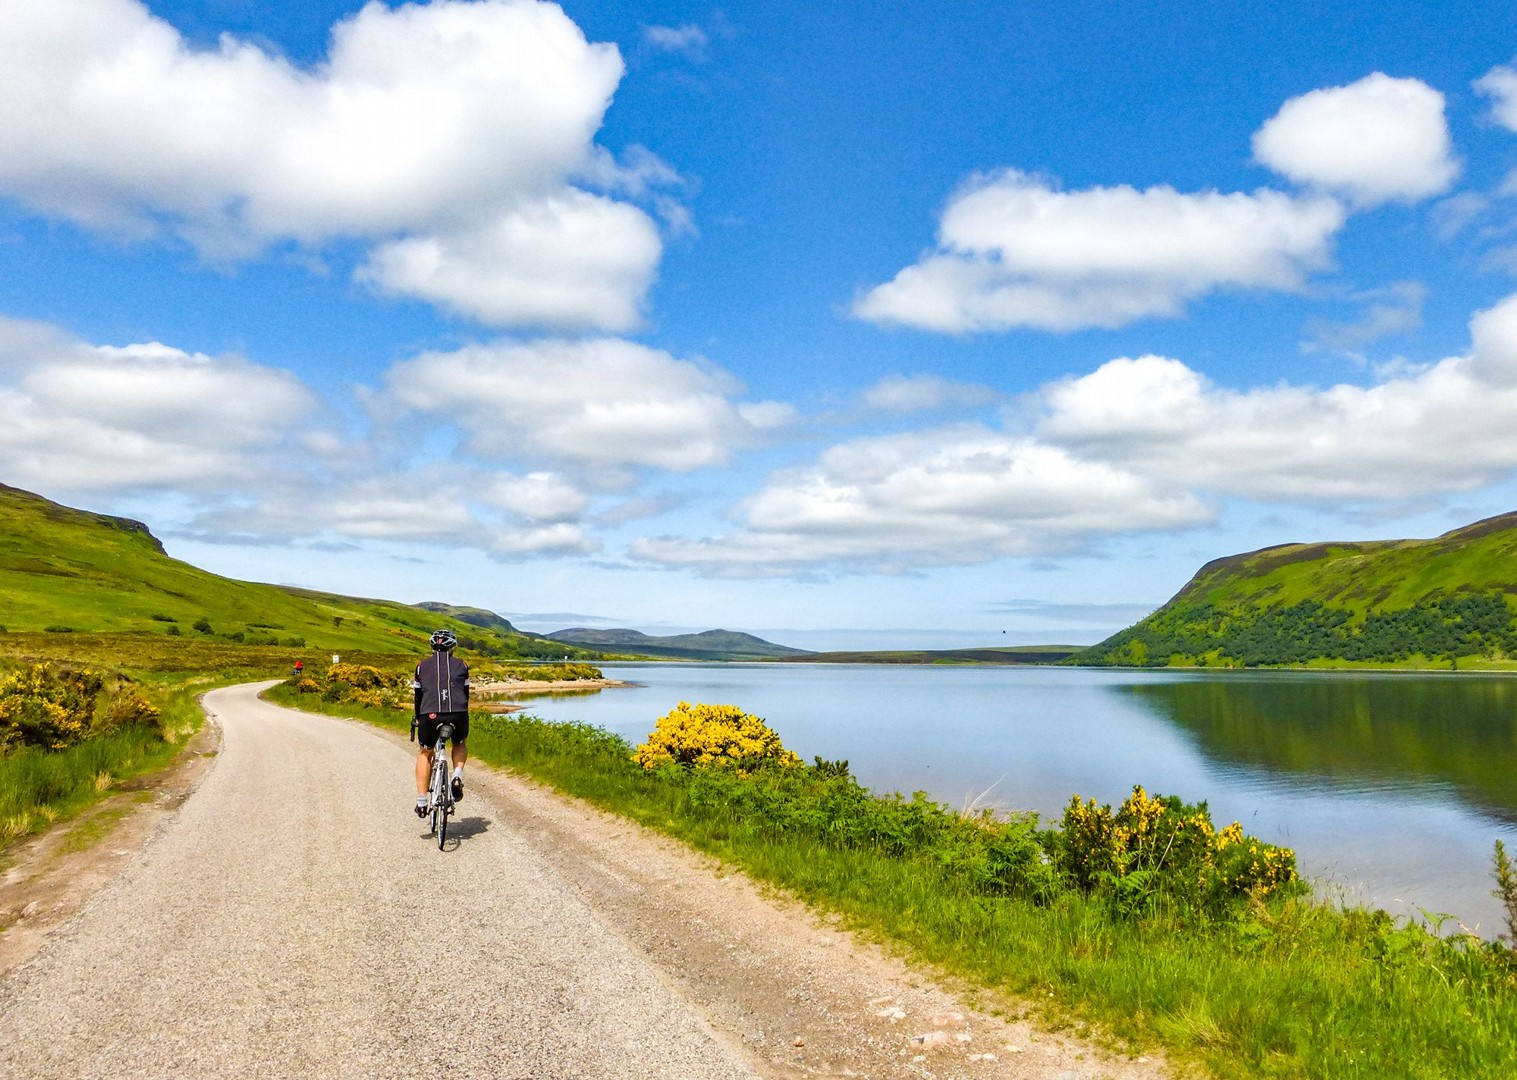 cycling-guided-road-holiday-lejog-route-3-weeks-with-saddle-skedaddle-uk.jpg - UK - Land's End to John O'Groats Explorer (22 days) - Guided Cycling Holiday - Road Cycling